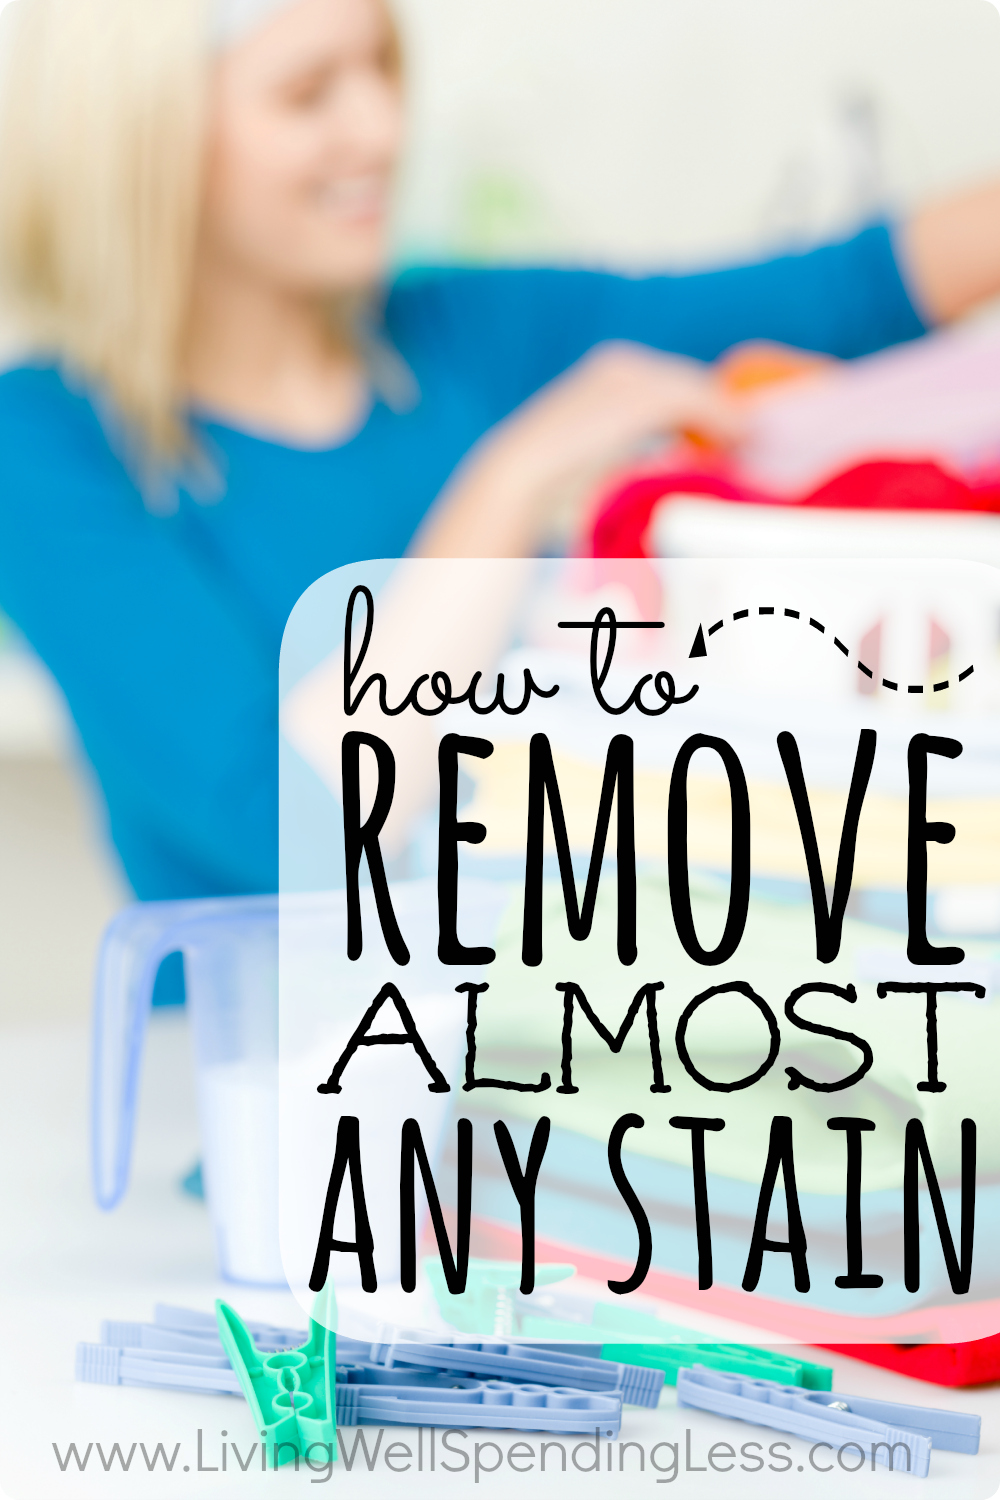 Uncategorized Hairspray Stain Removal how to get rid of almost every stain remover ideas remove any stain